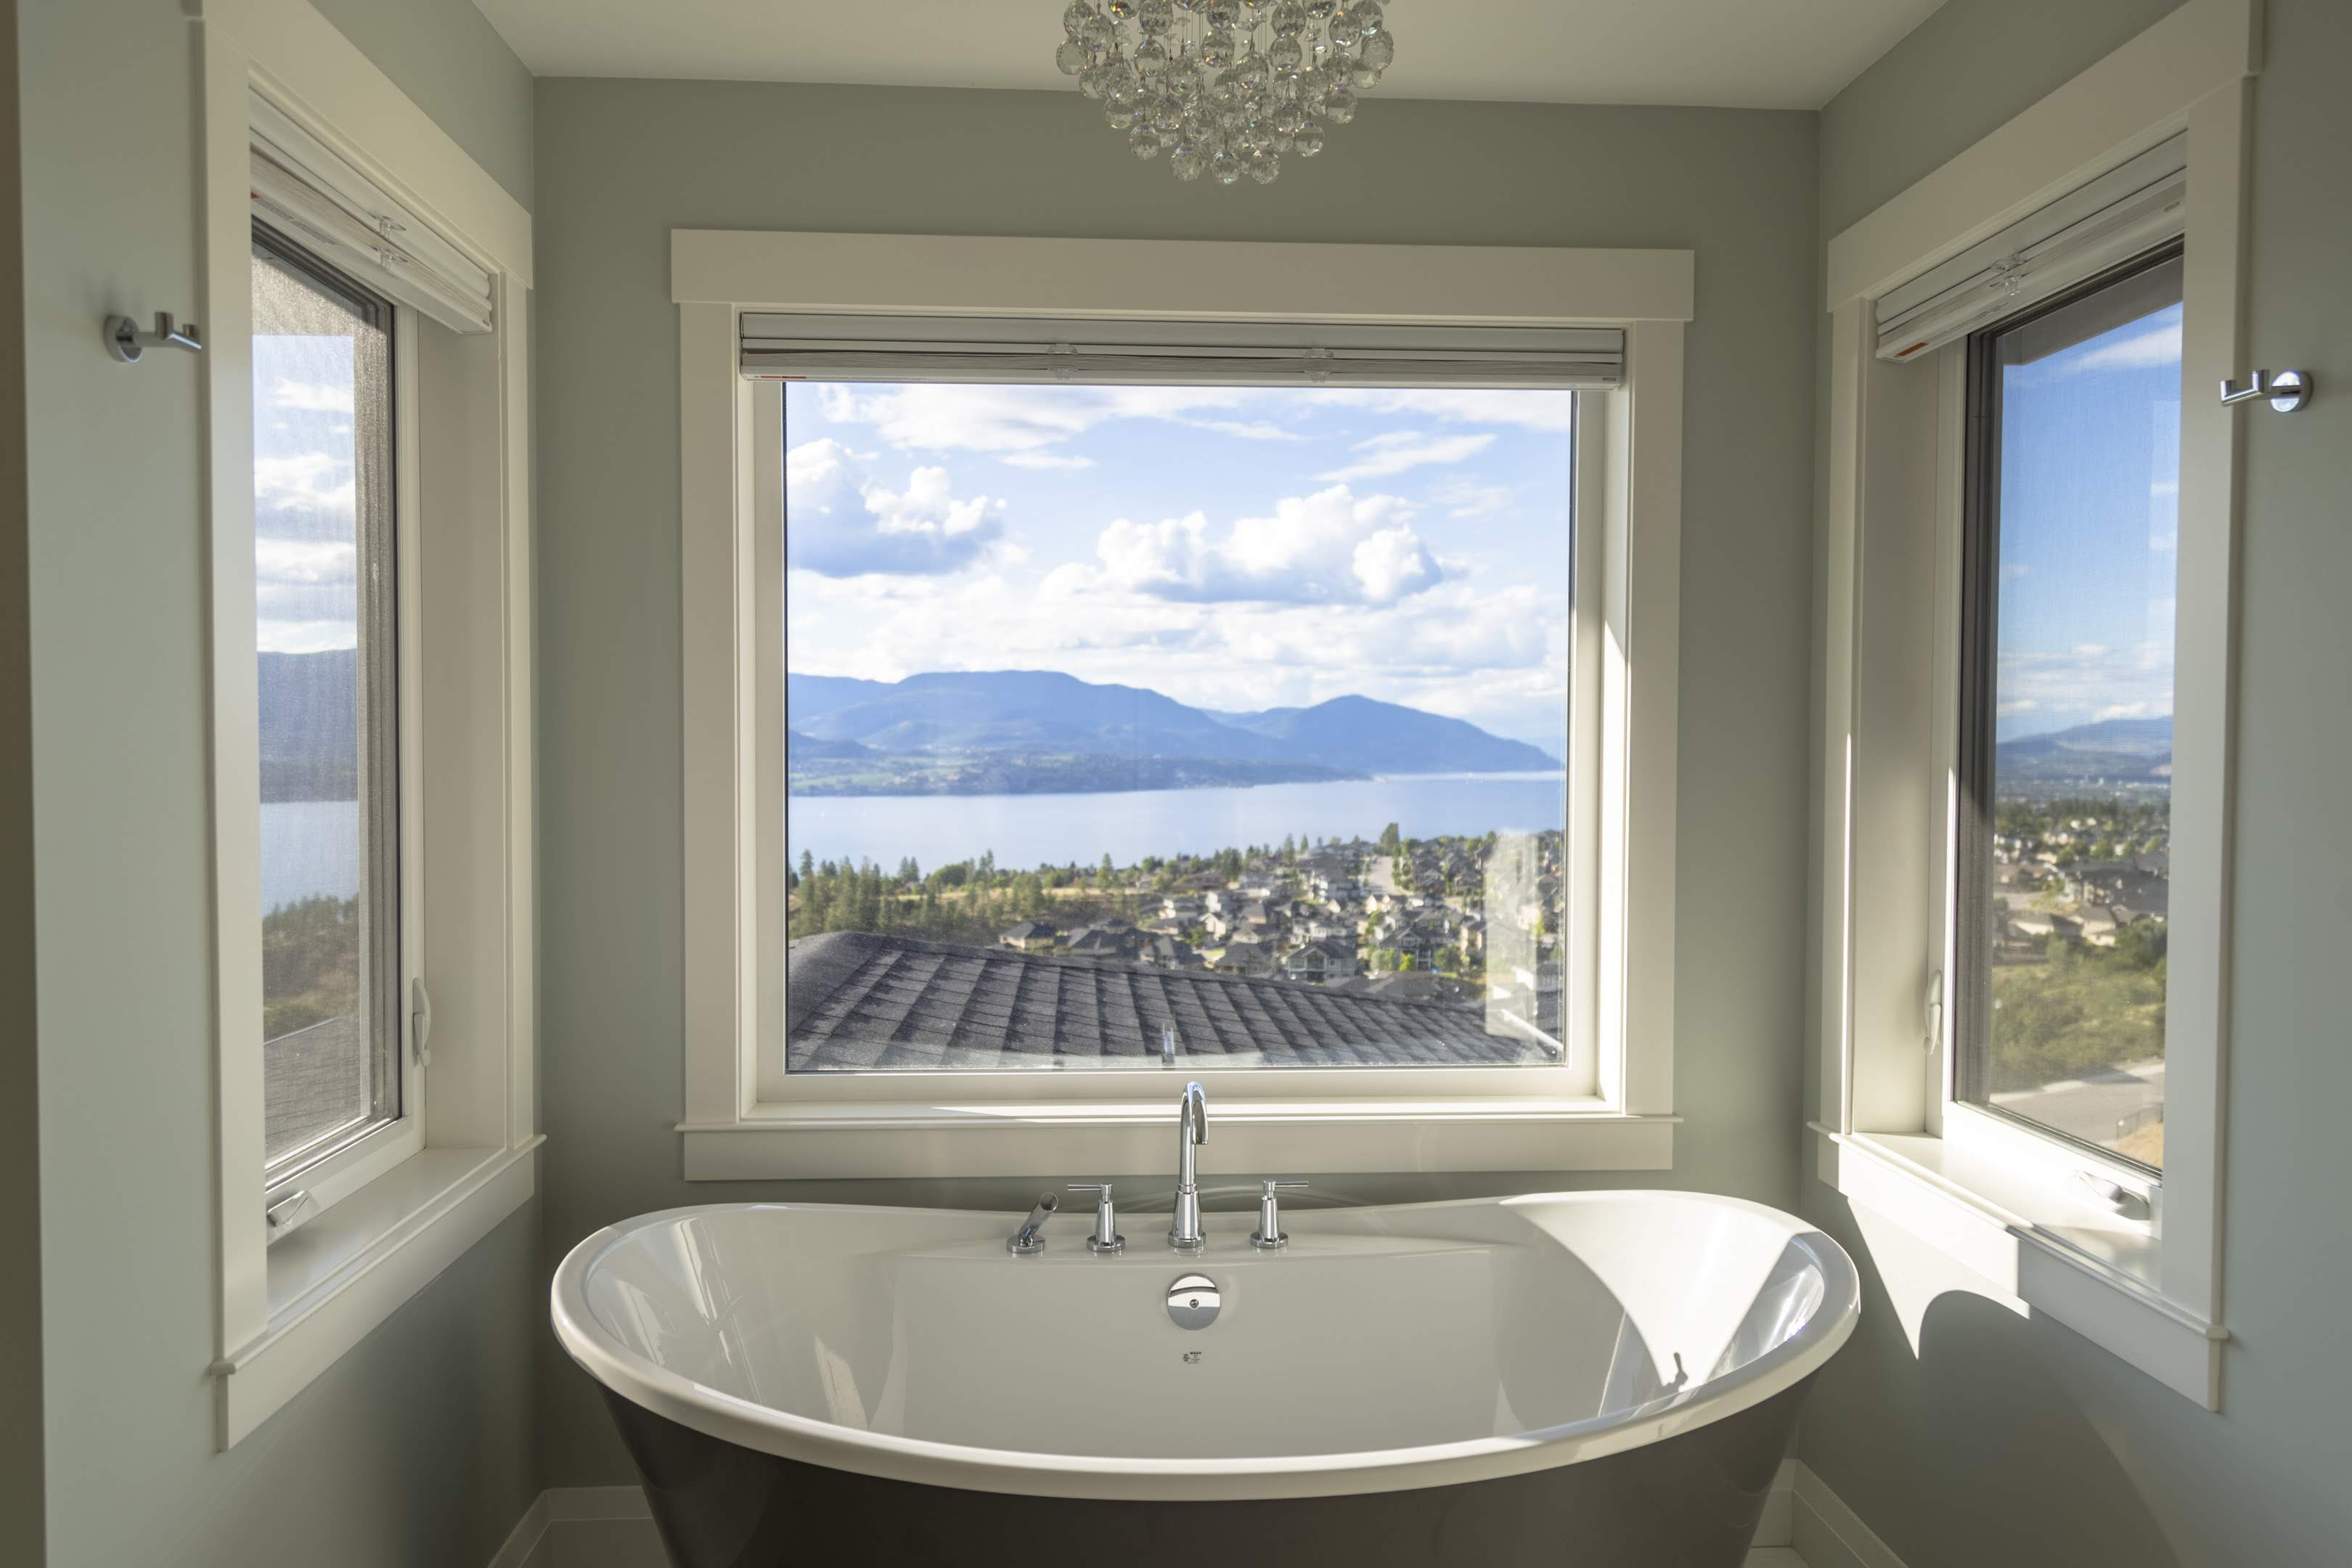 Ensuite bath tub with a lake view built by Impact Builders